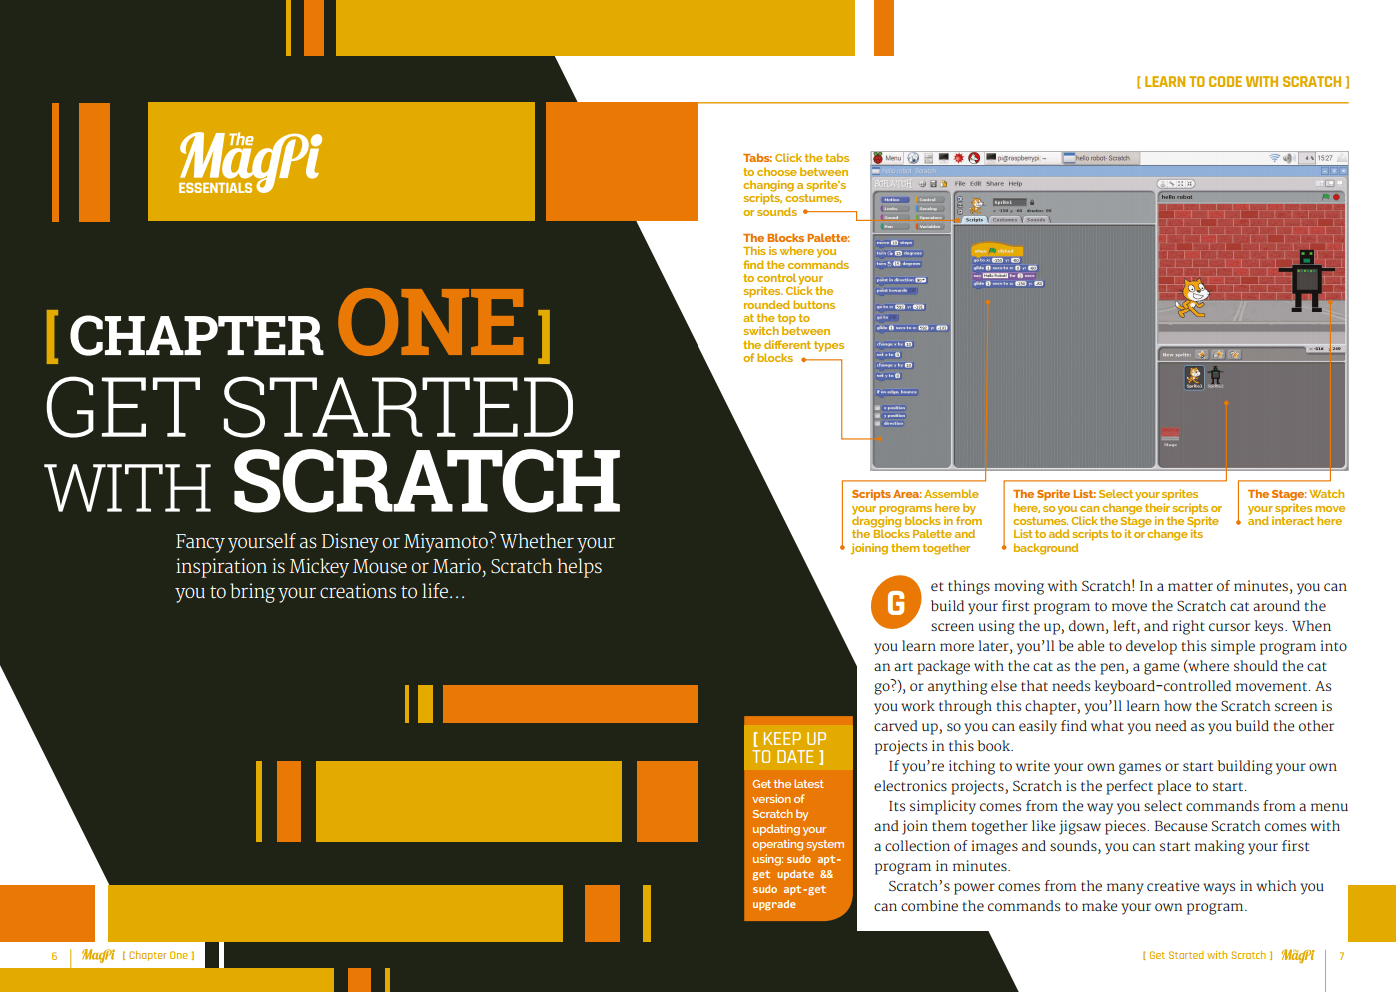 Get started with Scratch and learn the basics of coding today